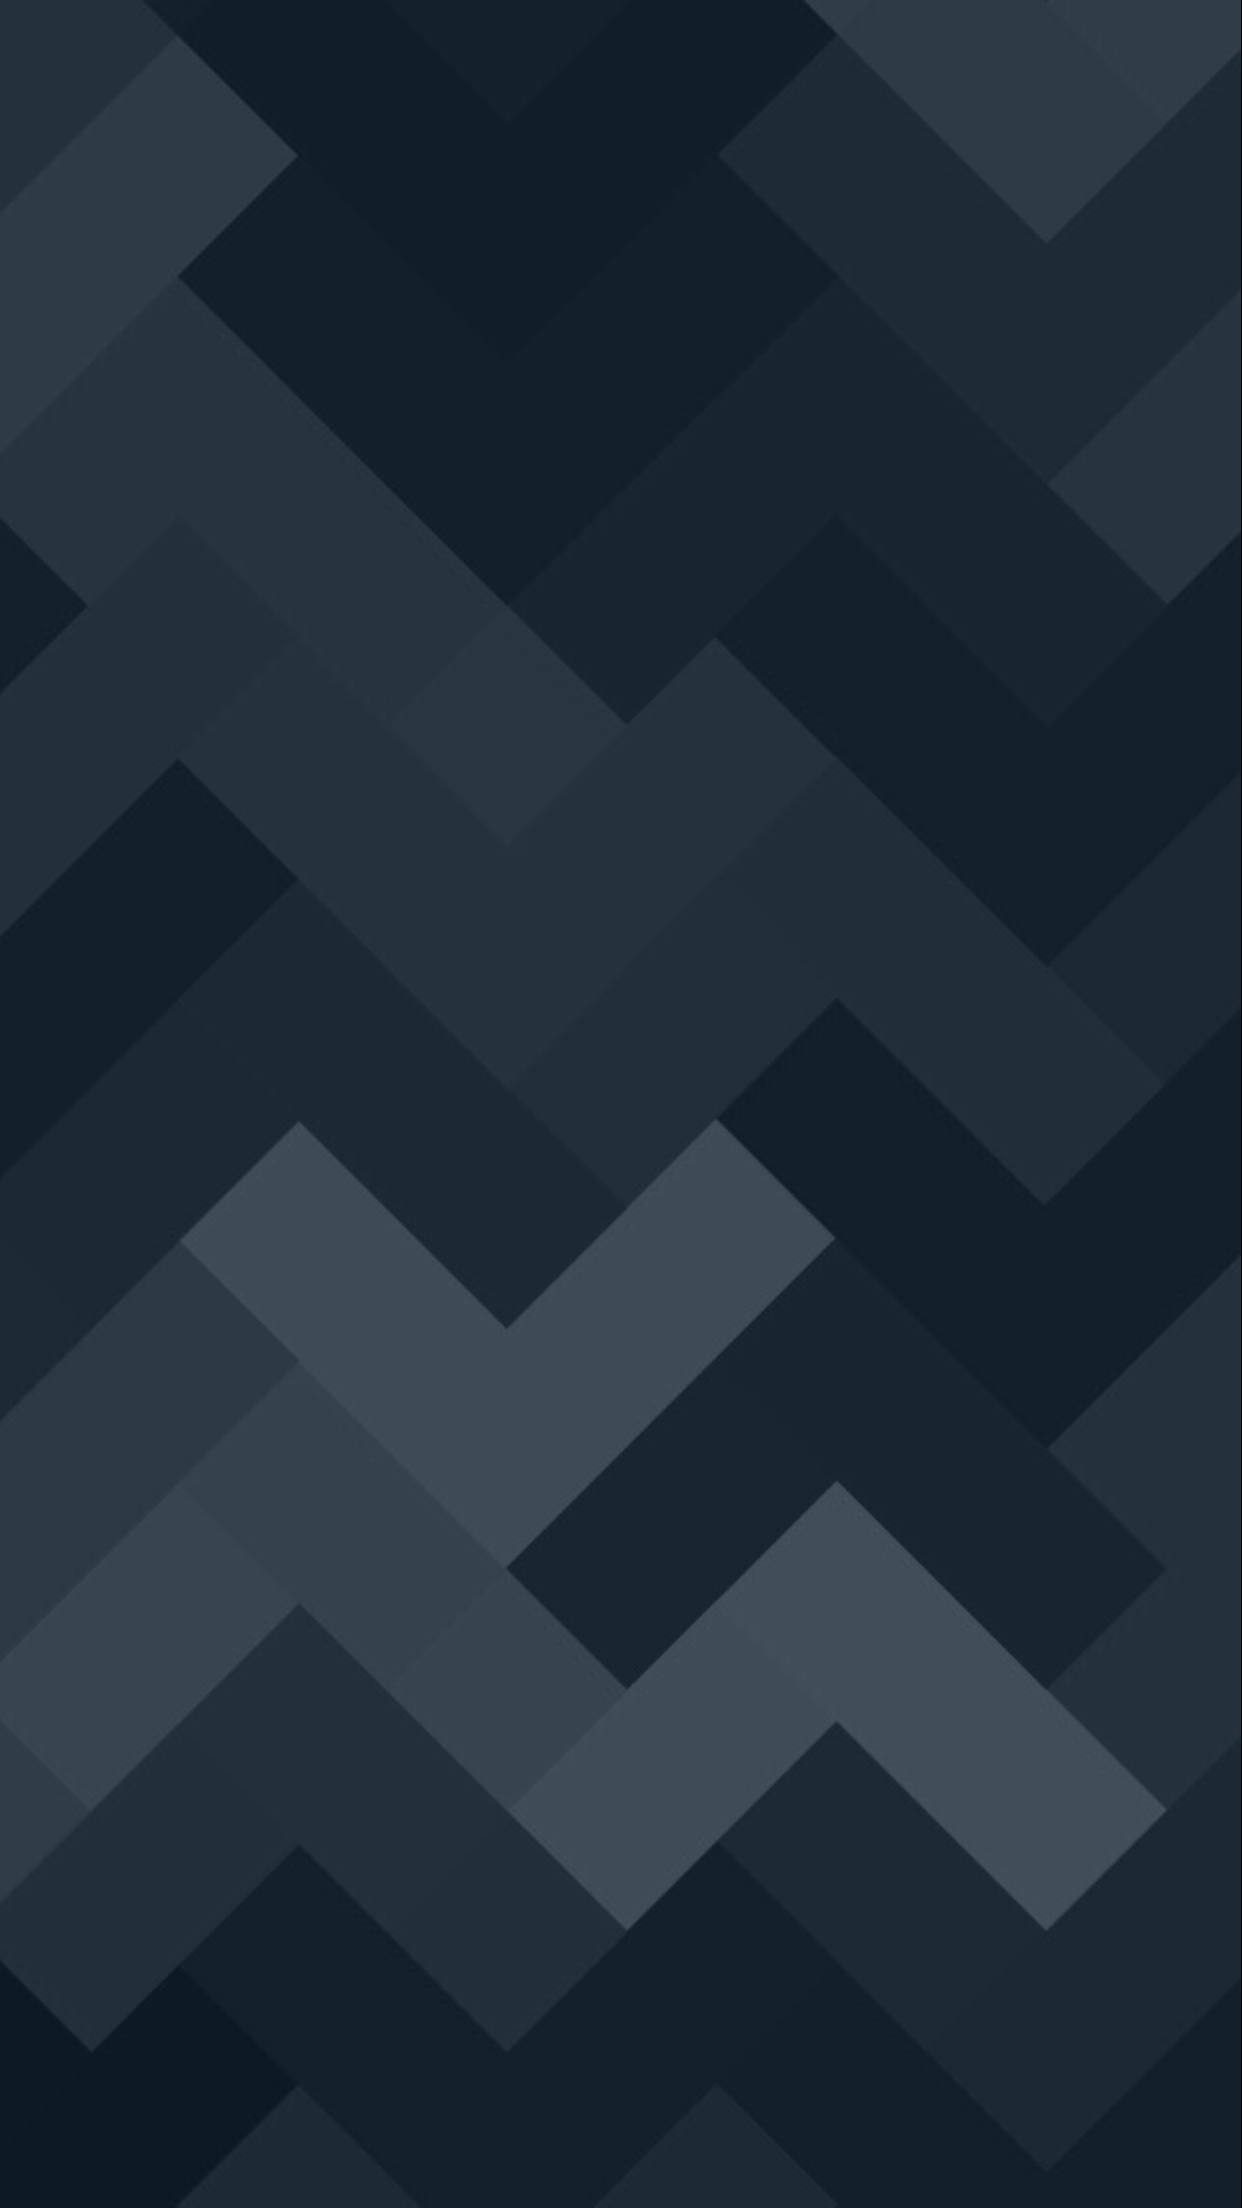 beautiful collection of geometric wallpapers for iPhone 1242x2208